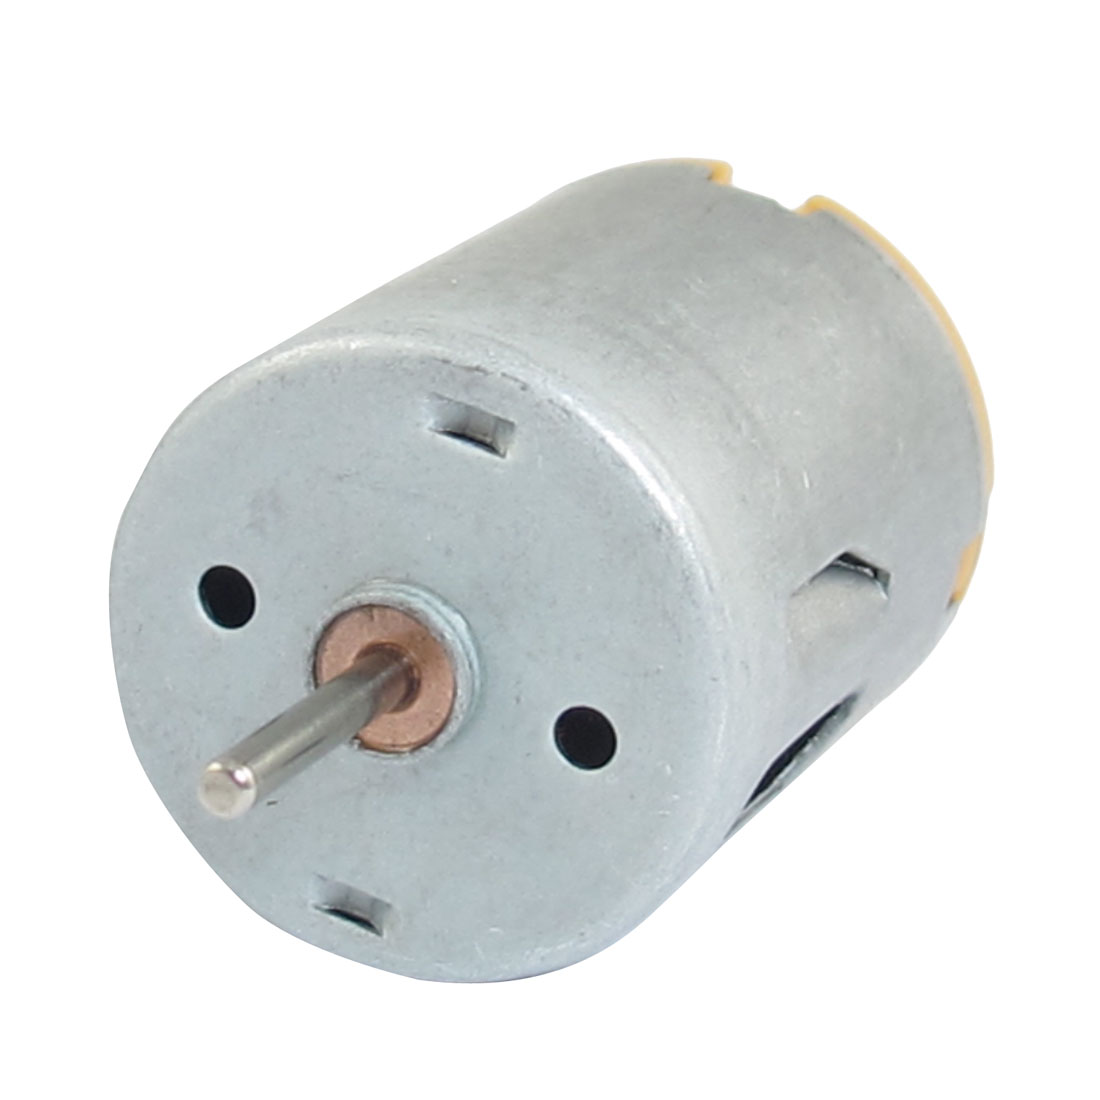 Uxcell(R) 8000RPM 9V 68mA High Torque Magnetic Cylindrical Mini DC Motor